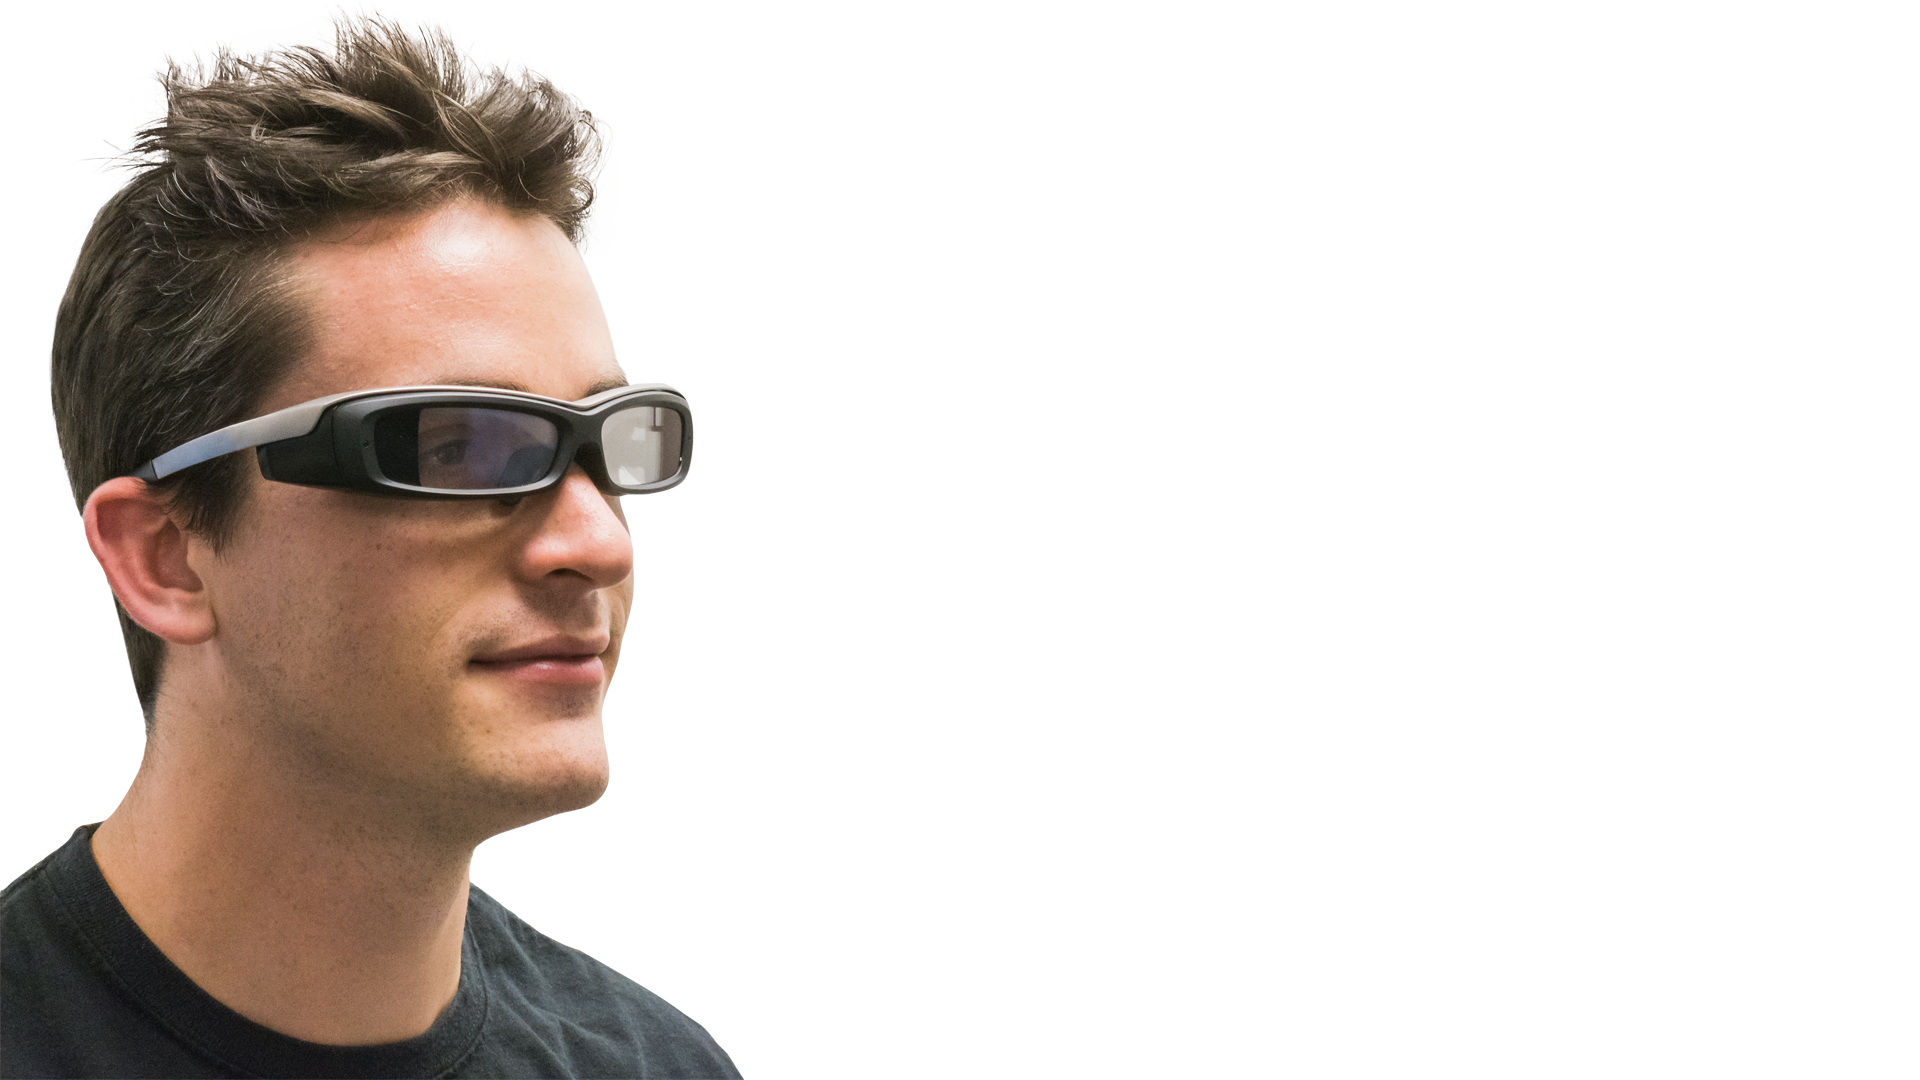 Upskill and Sony Partner For Business Smart Glasses Solutions